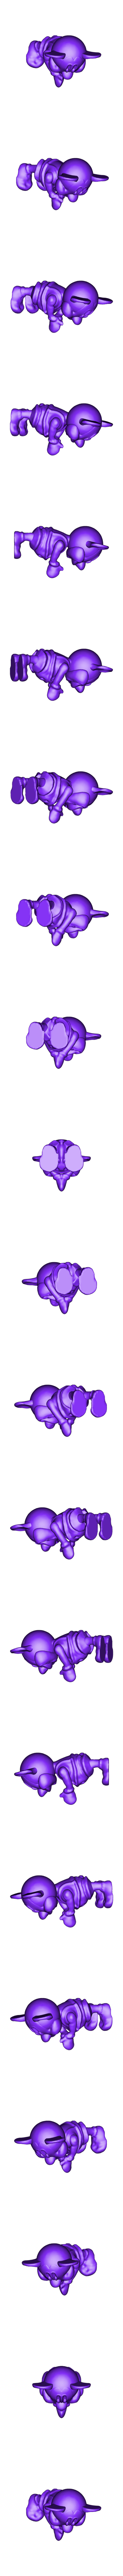 Mickey-1.stl Download free STL file Mickey Greeting • 3D printable model, quangdo1700